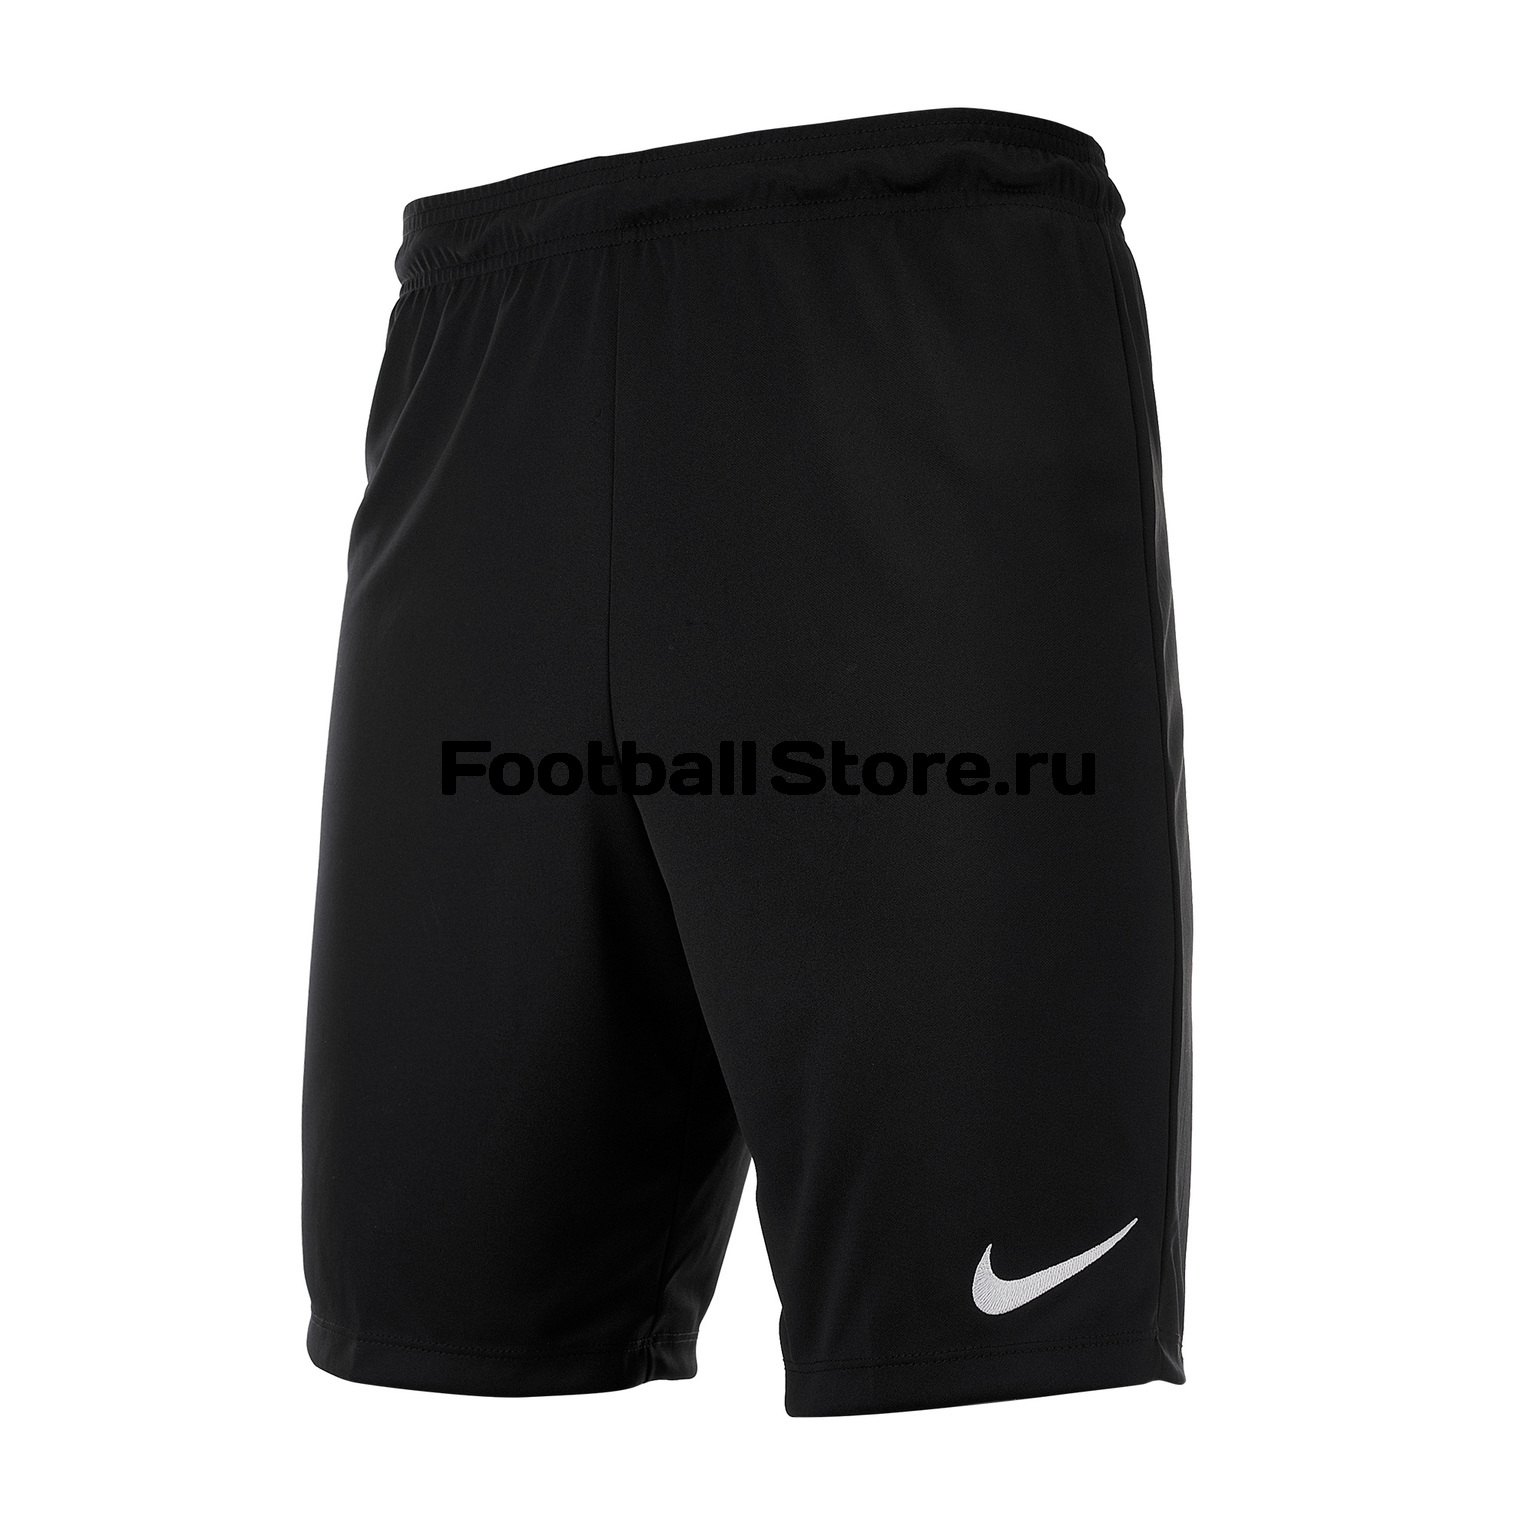 Шорты Nike Park II KNIT Short NB 725887-010 шорты nike шорты игровые nike park ii knit short wb 725903 410